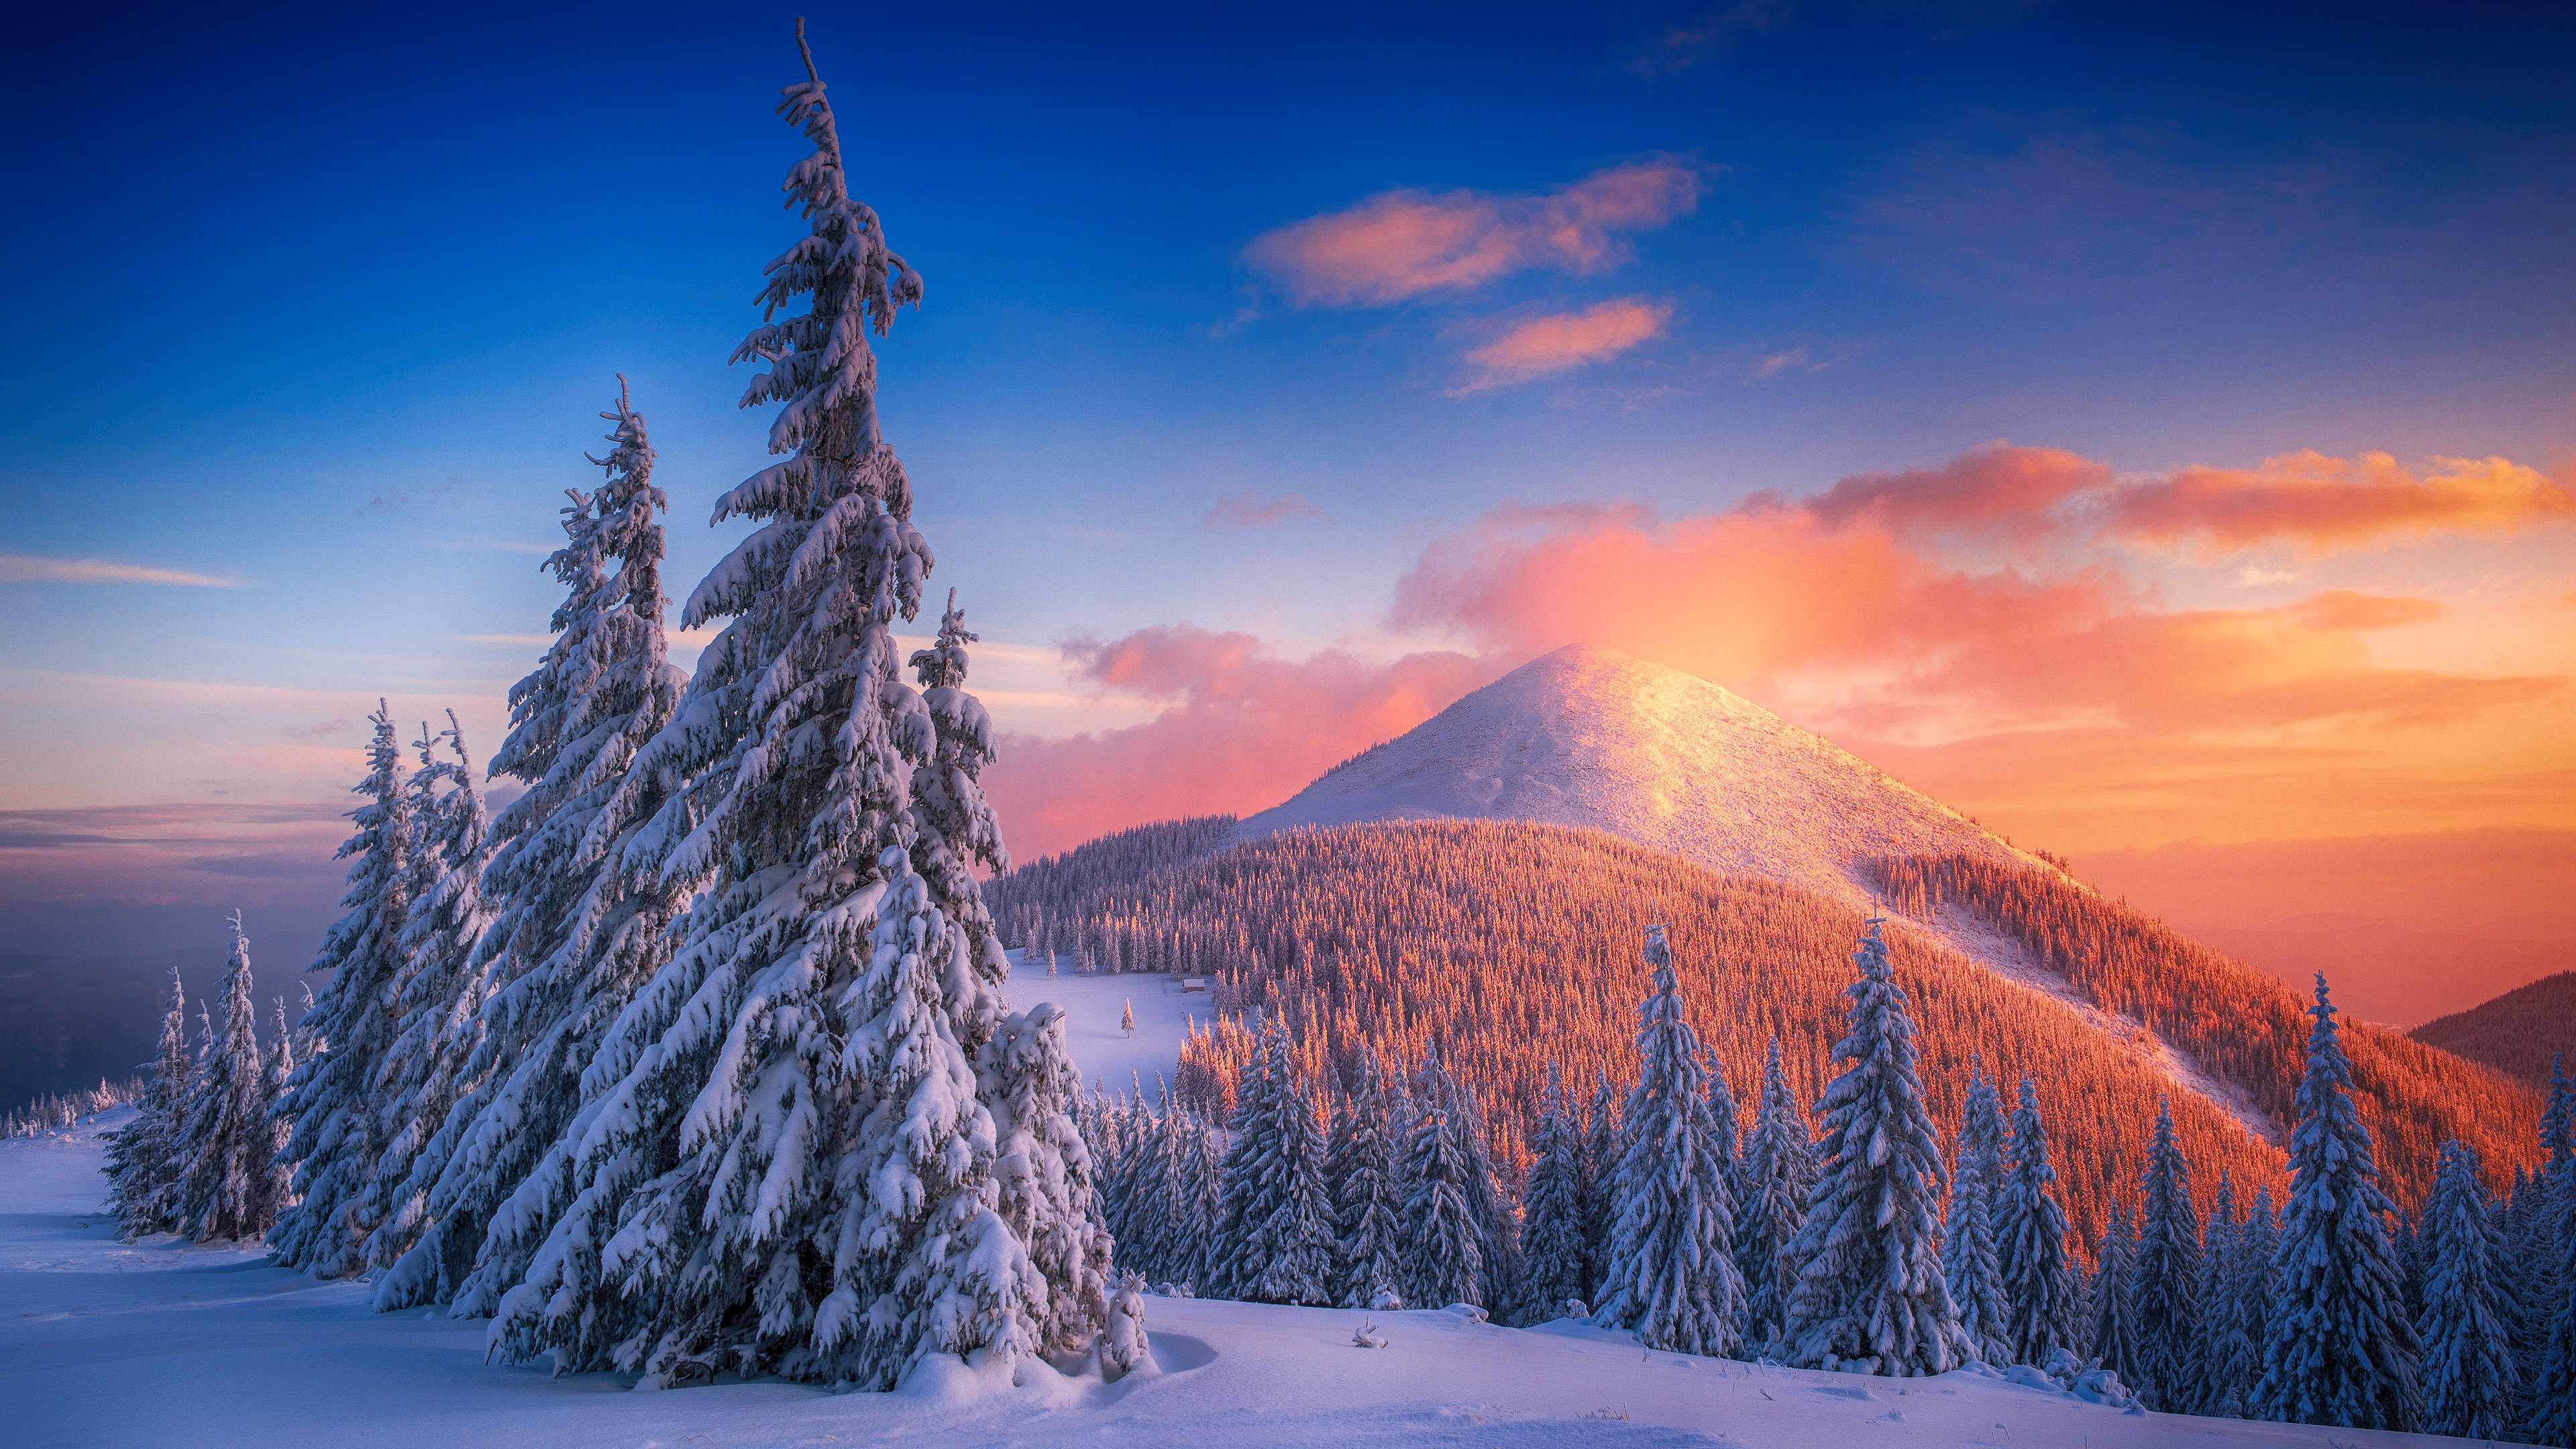 snowy pine trees and mountains 1574939664 - Snowy Pine Trees And Mountains -